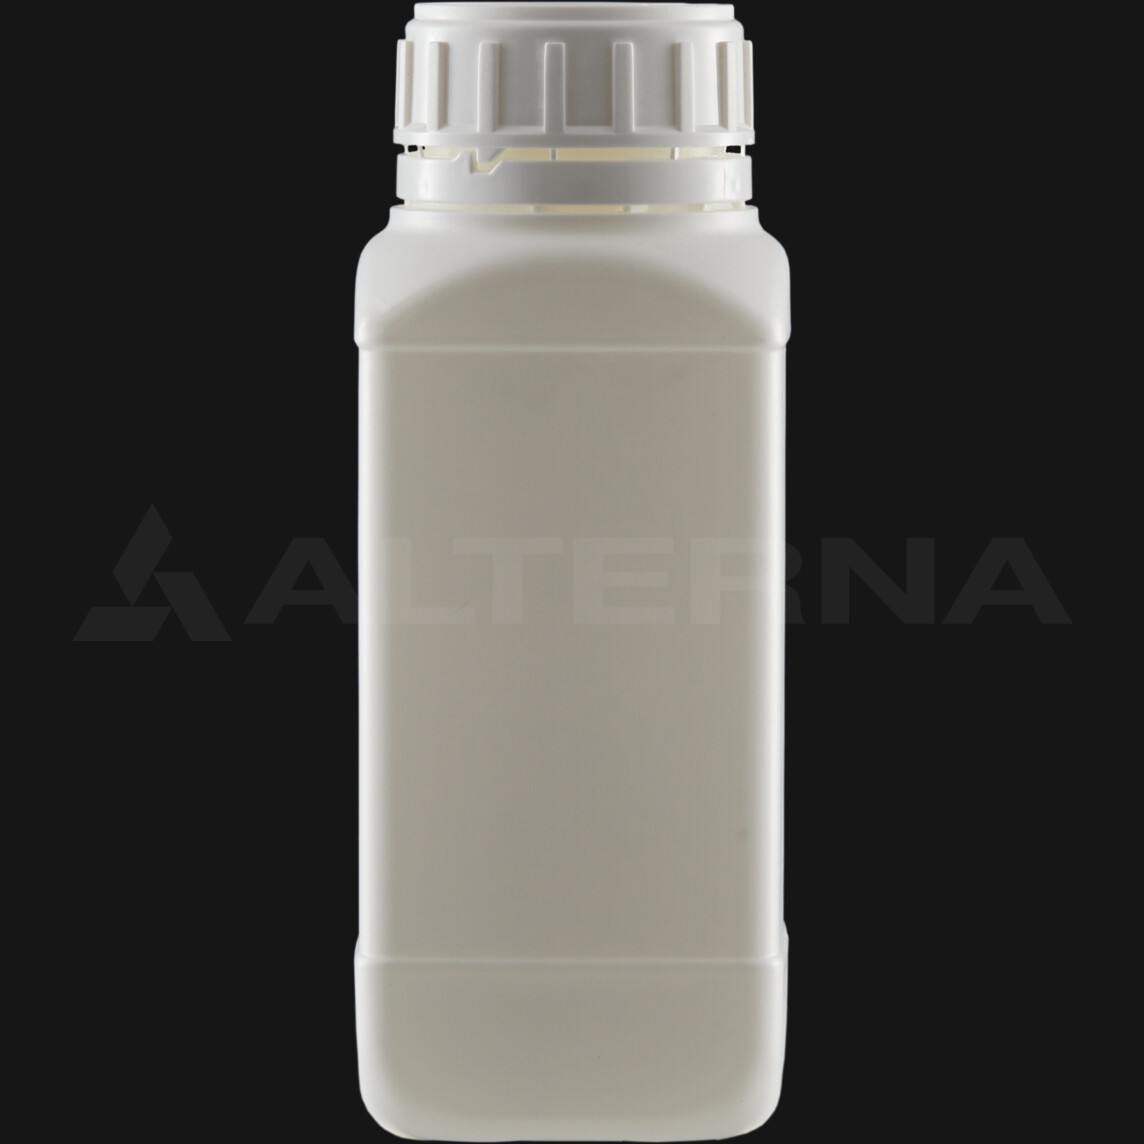 500 ml HDPE Square Bottle with 50 mm Foam Seal Vented Secure Cap